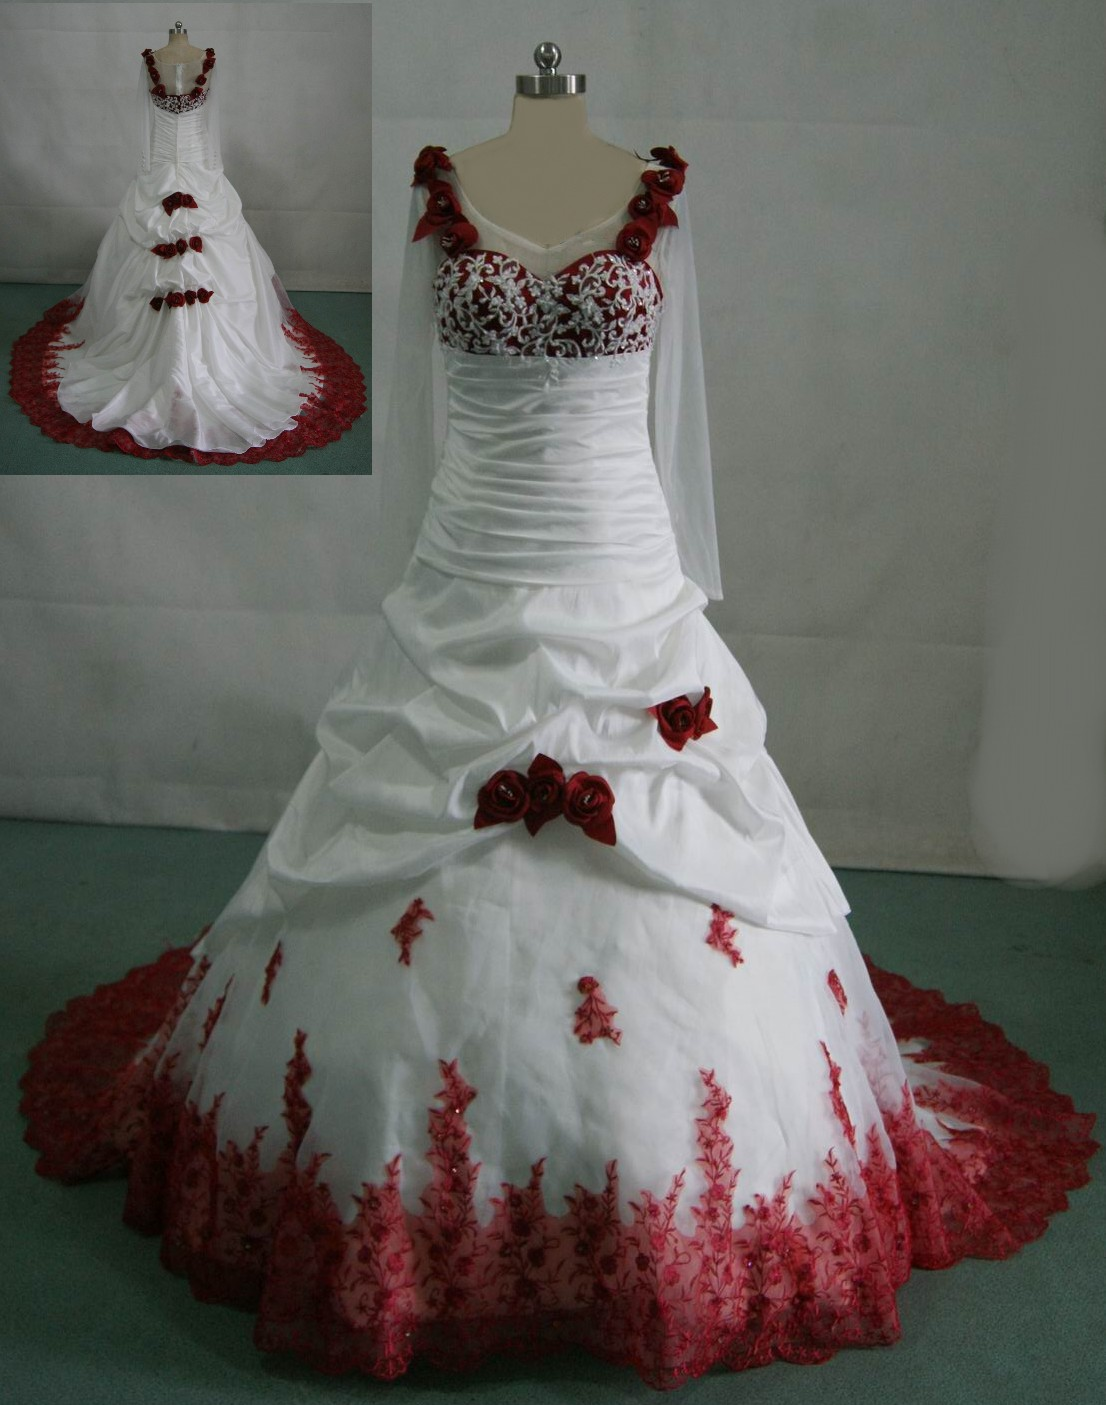 Bridal gowns with color colorful wedding dresses White wedding gown with red roses on the dress